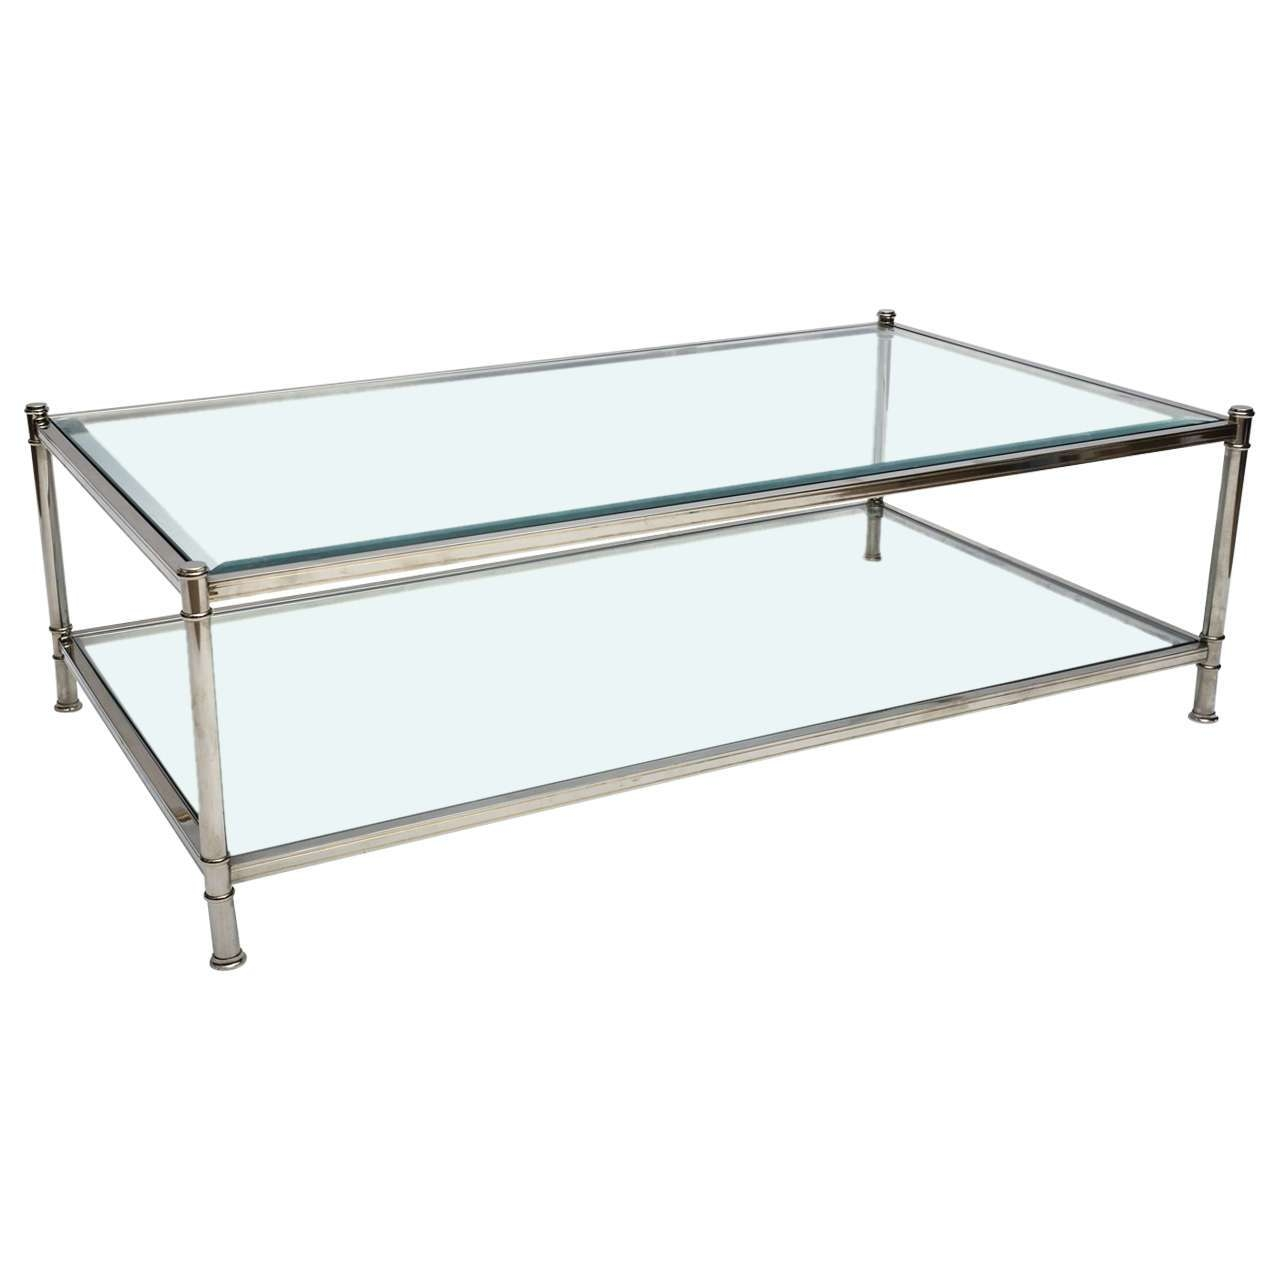 Coffee Tables Ideas: Cool Two Tier Glass Coffee Table Two Tier Pertaining To Well Known Steel And Glass Coffee Tables (View 20 of 20)